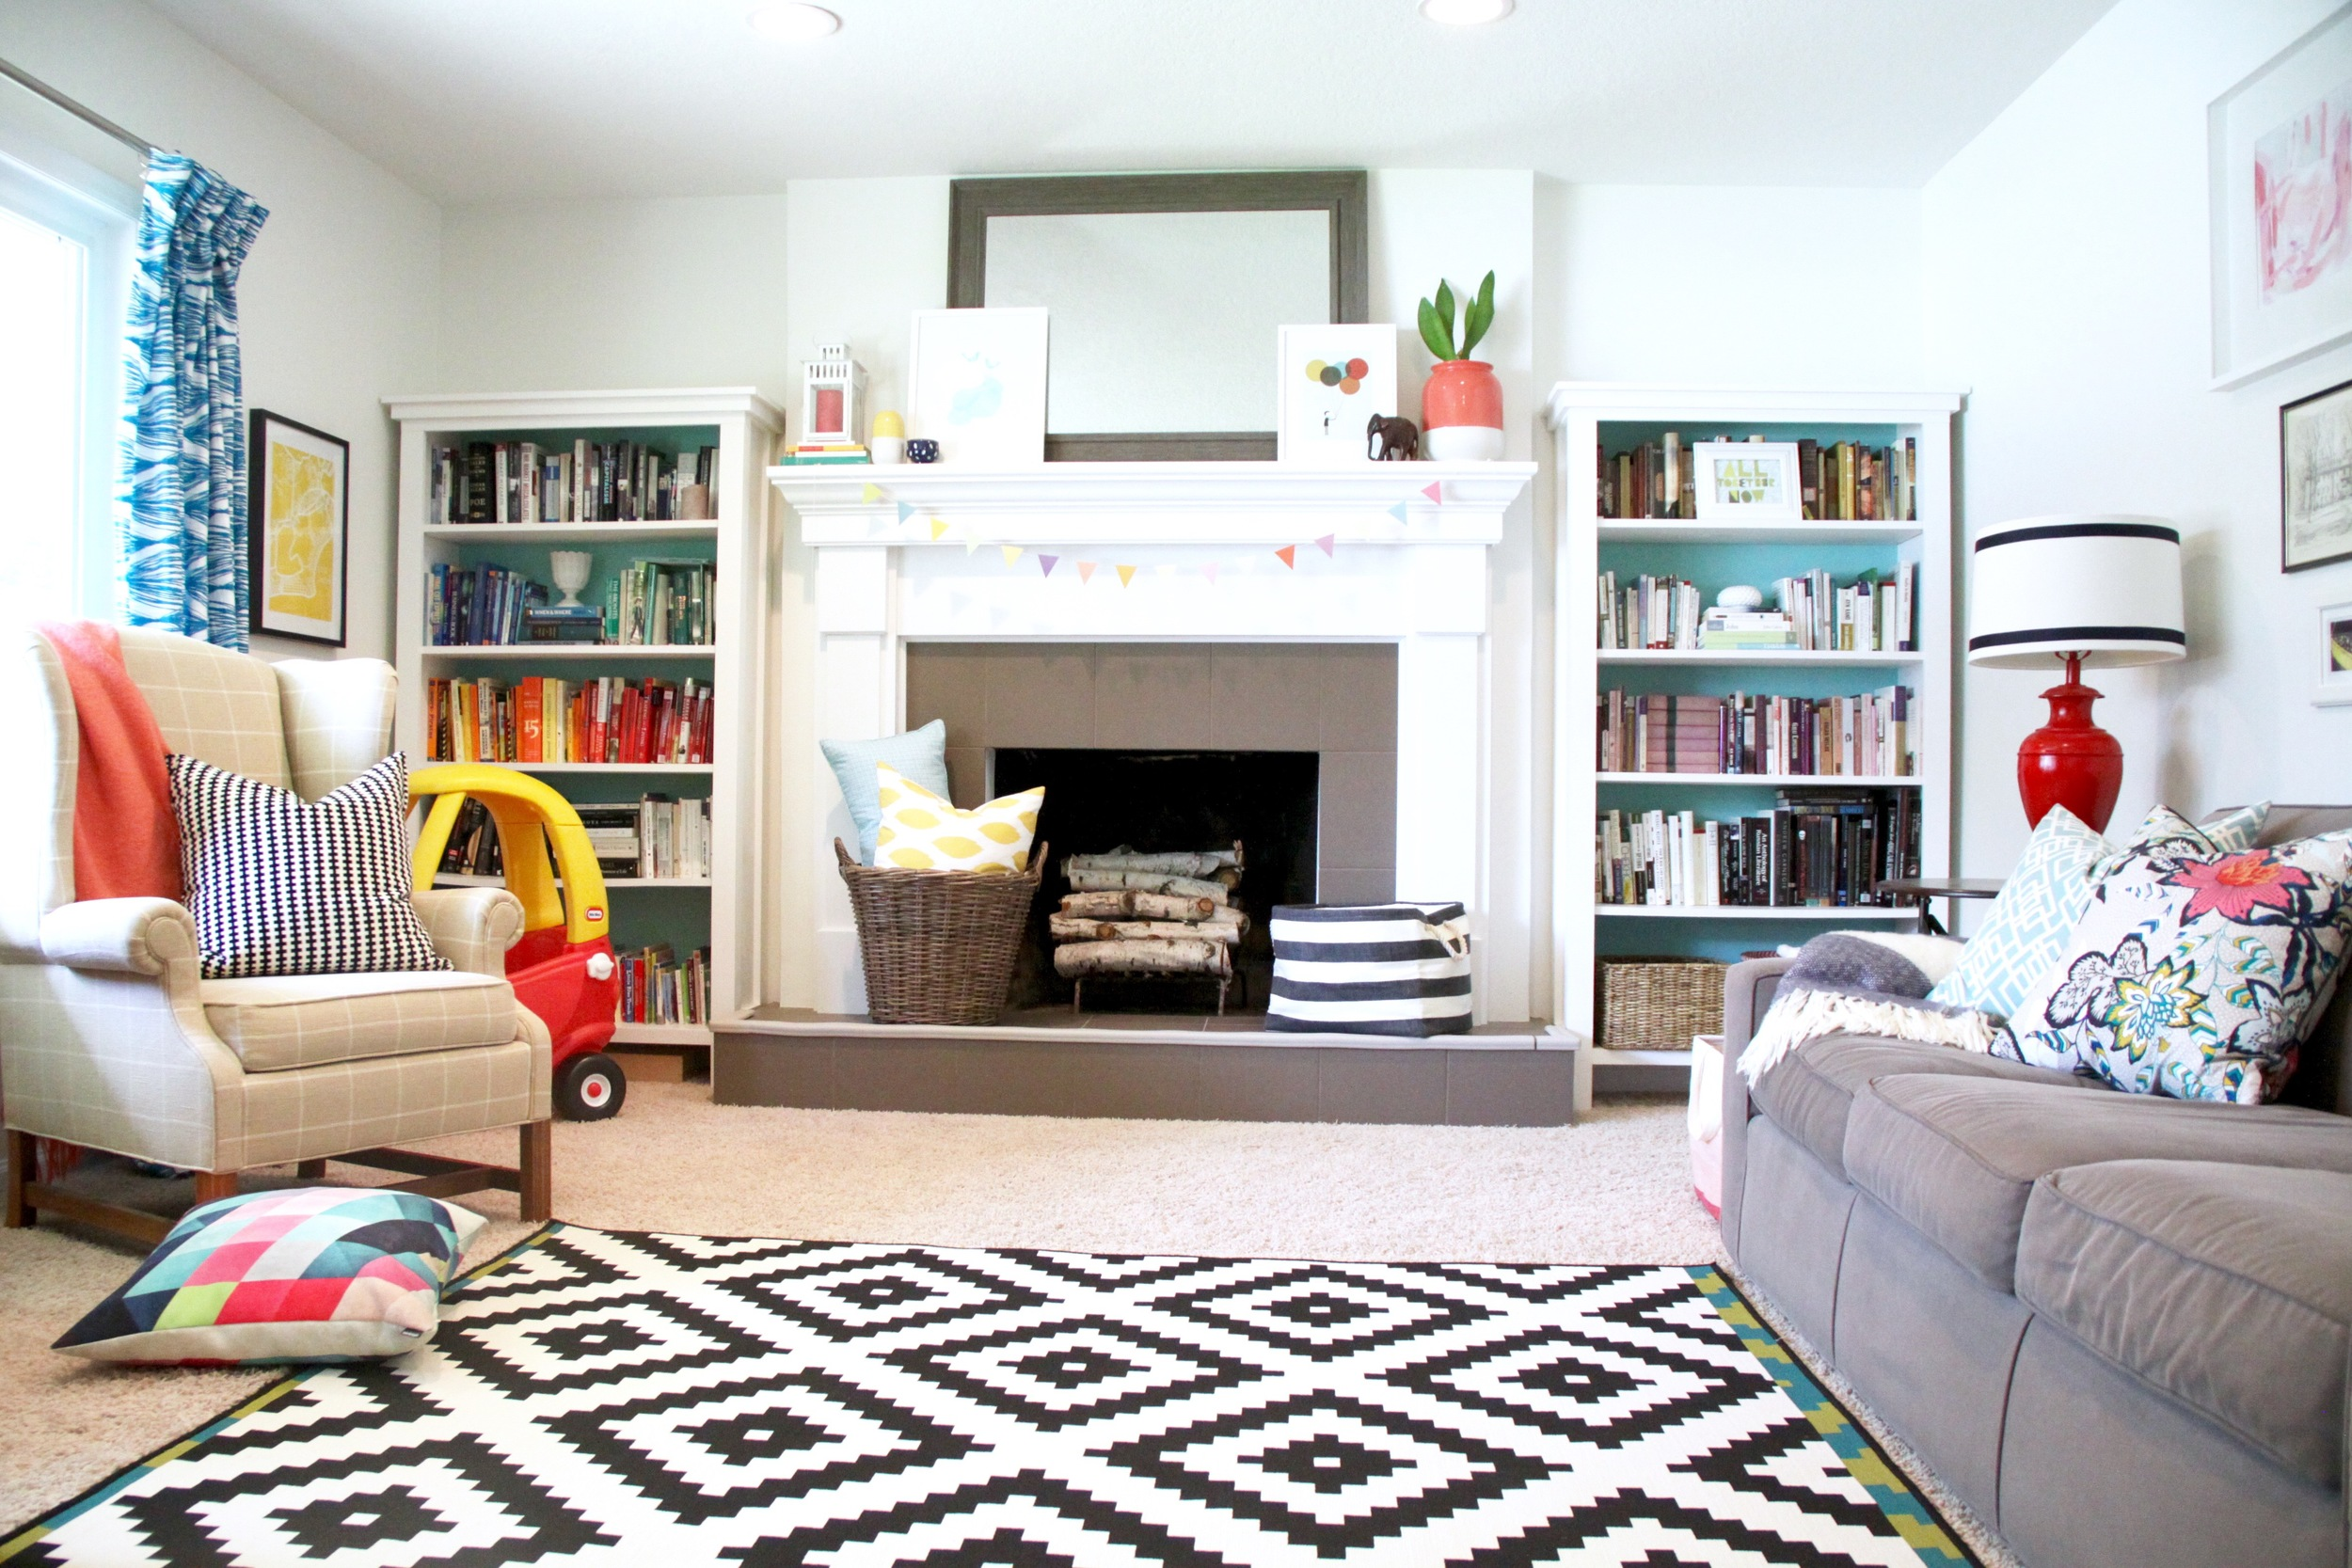 Living Room with White Mantel and DIY Bookshelves